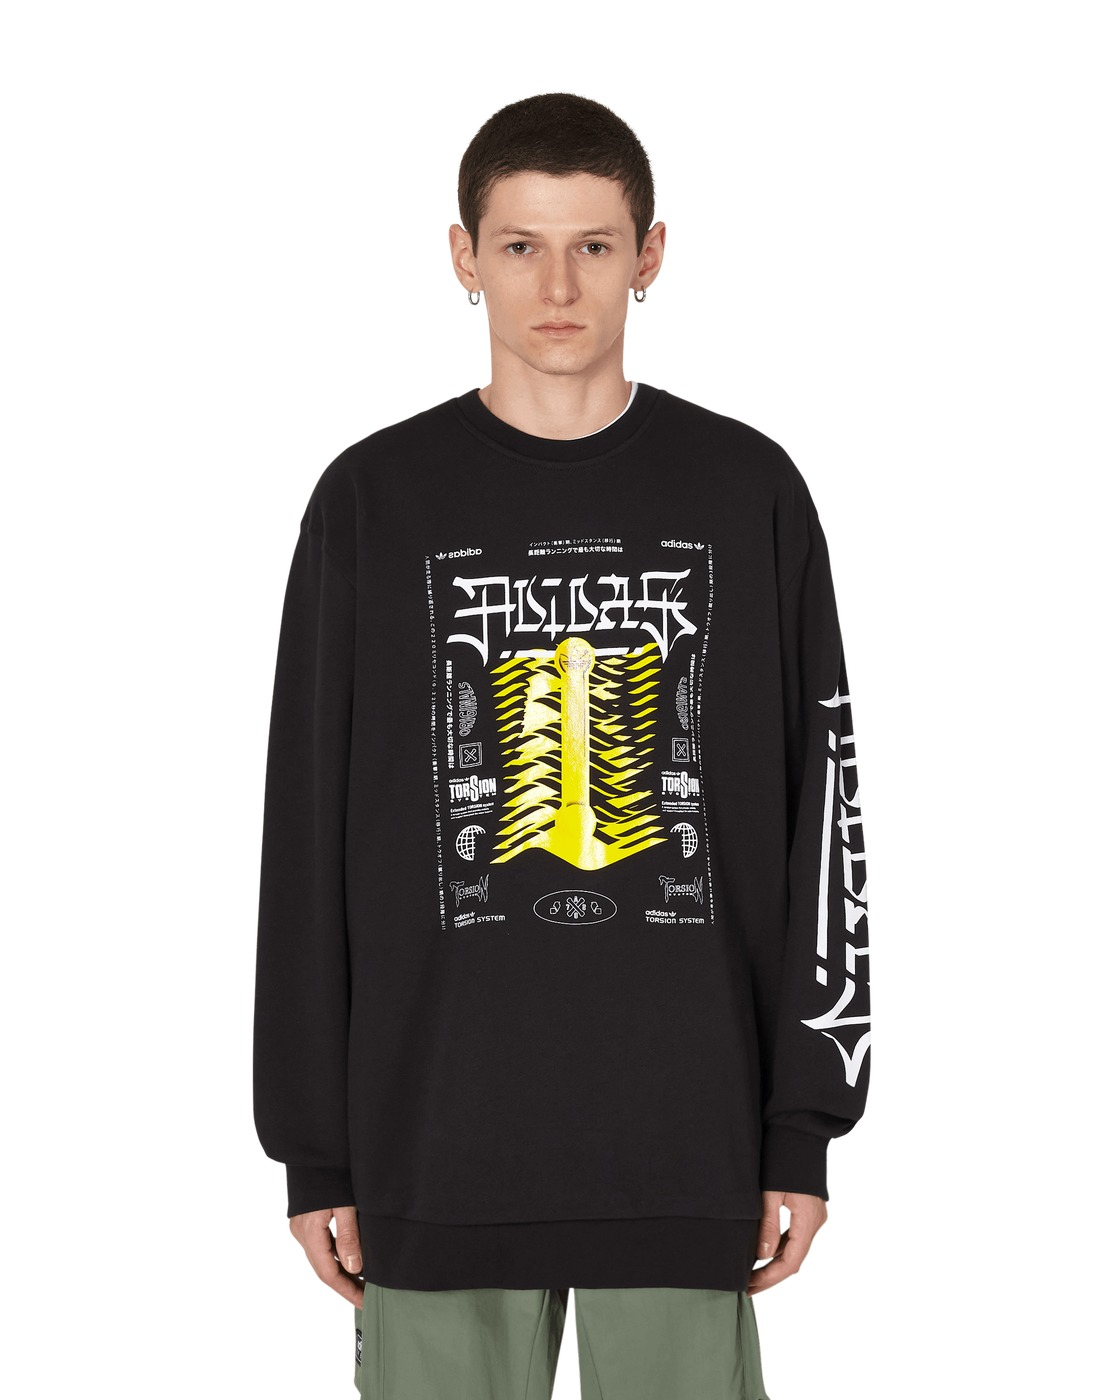 Adidas Originals Torsion Crewneck Sweatshirt Black